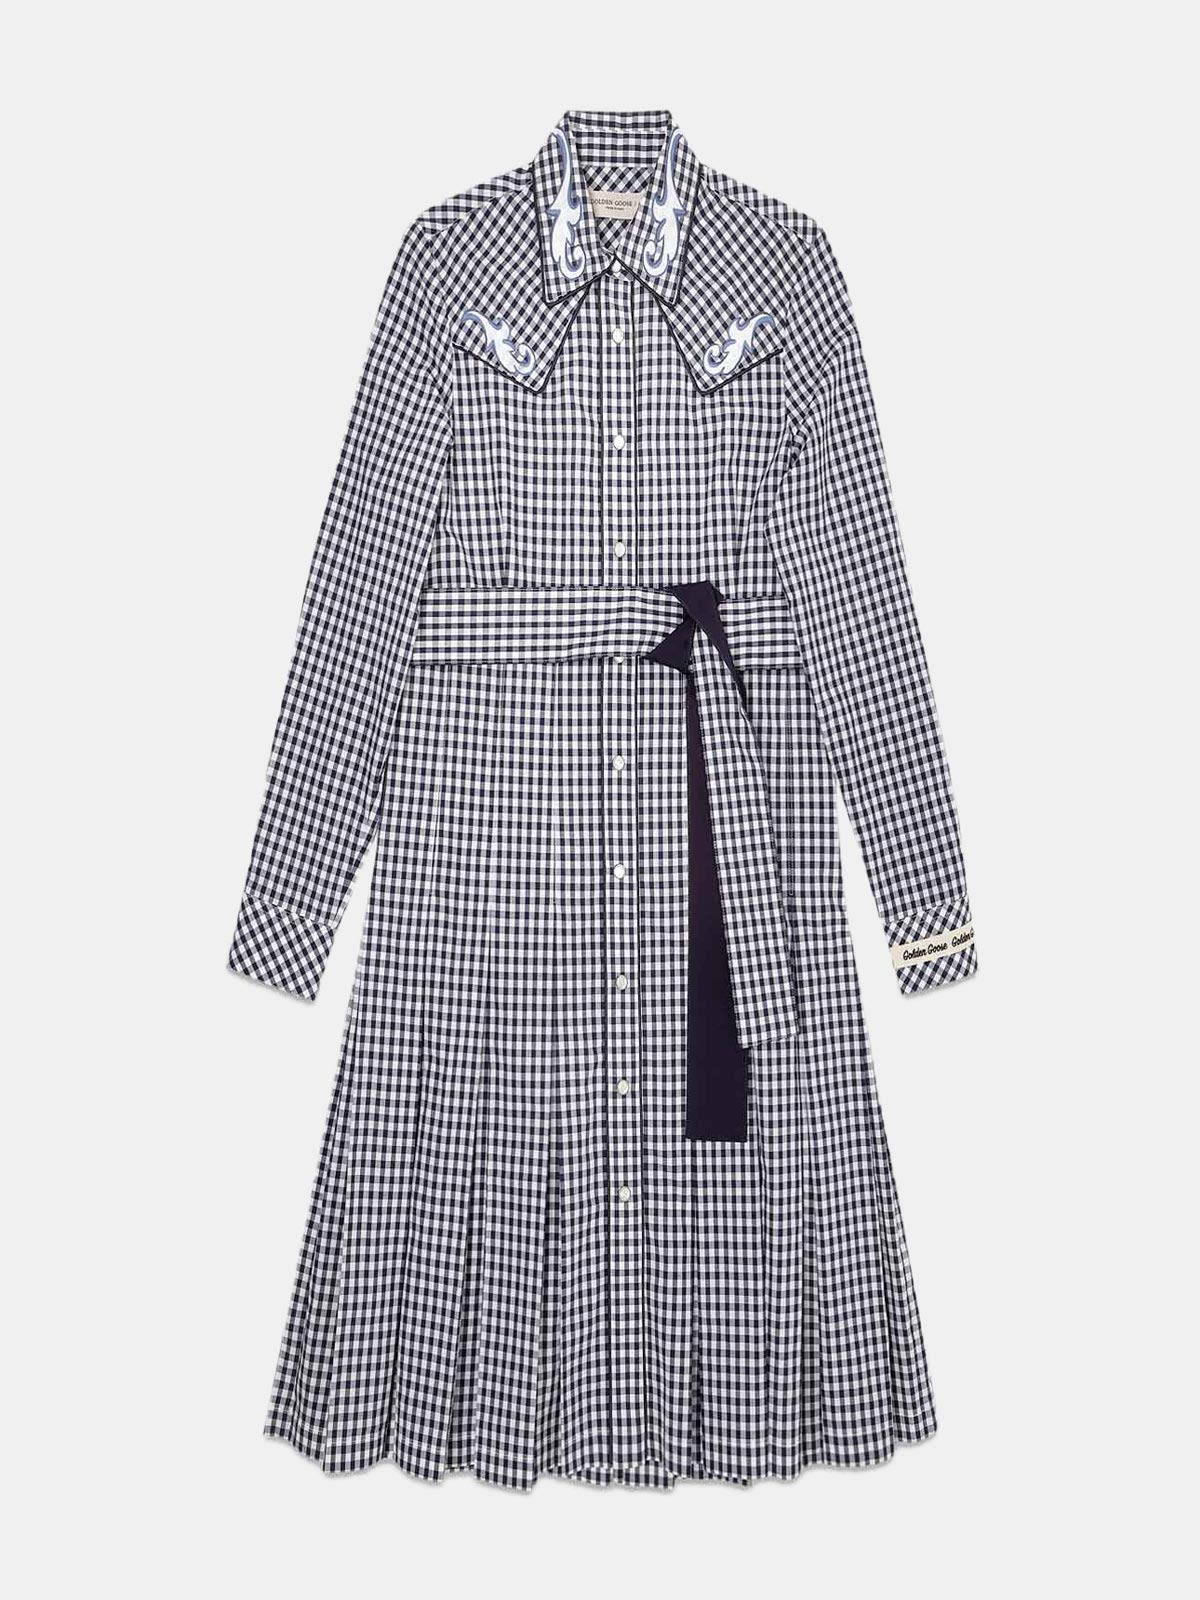 Golden Goose - Olivia dress with black and white checks and cowboy-style decorations in